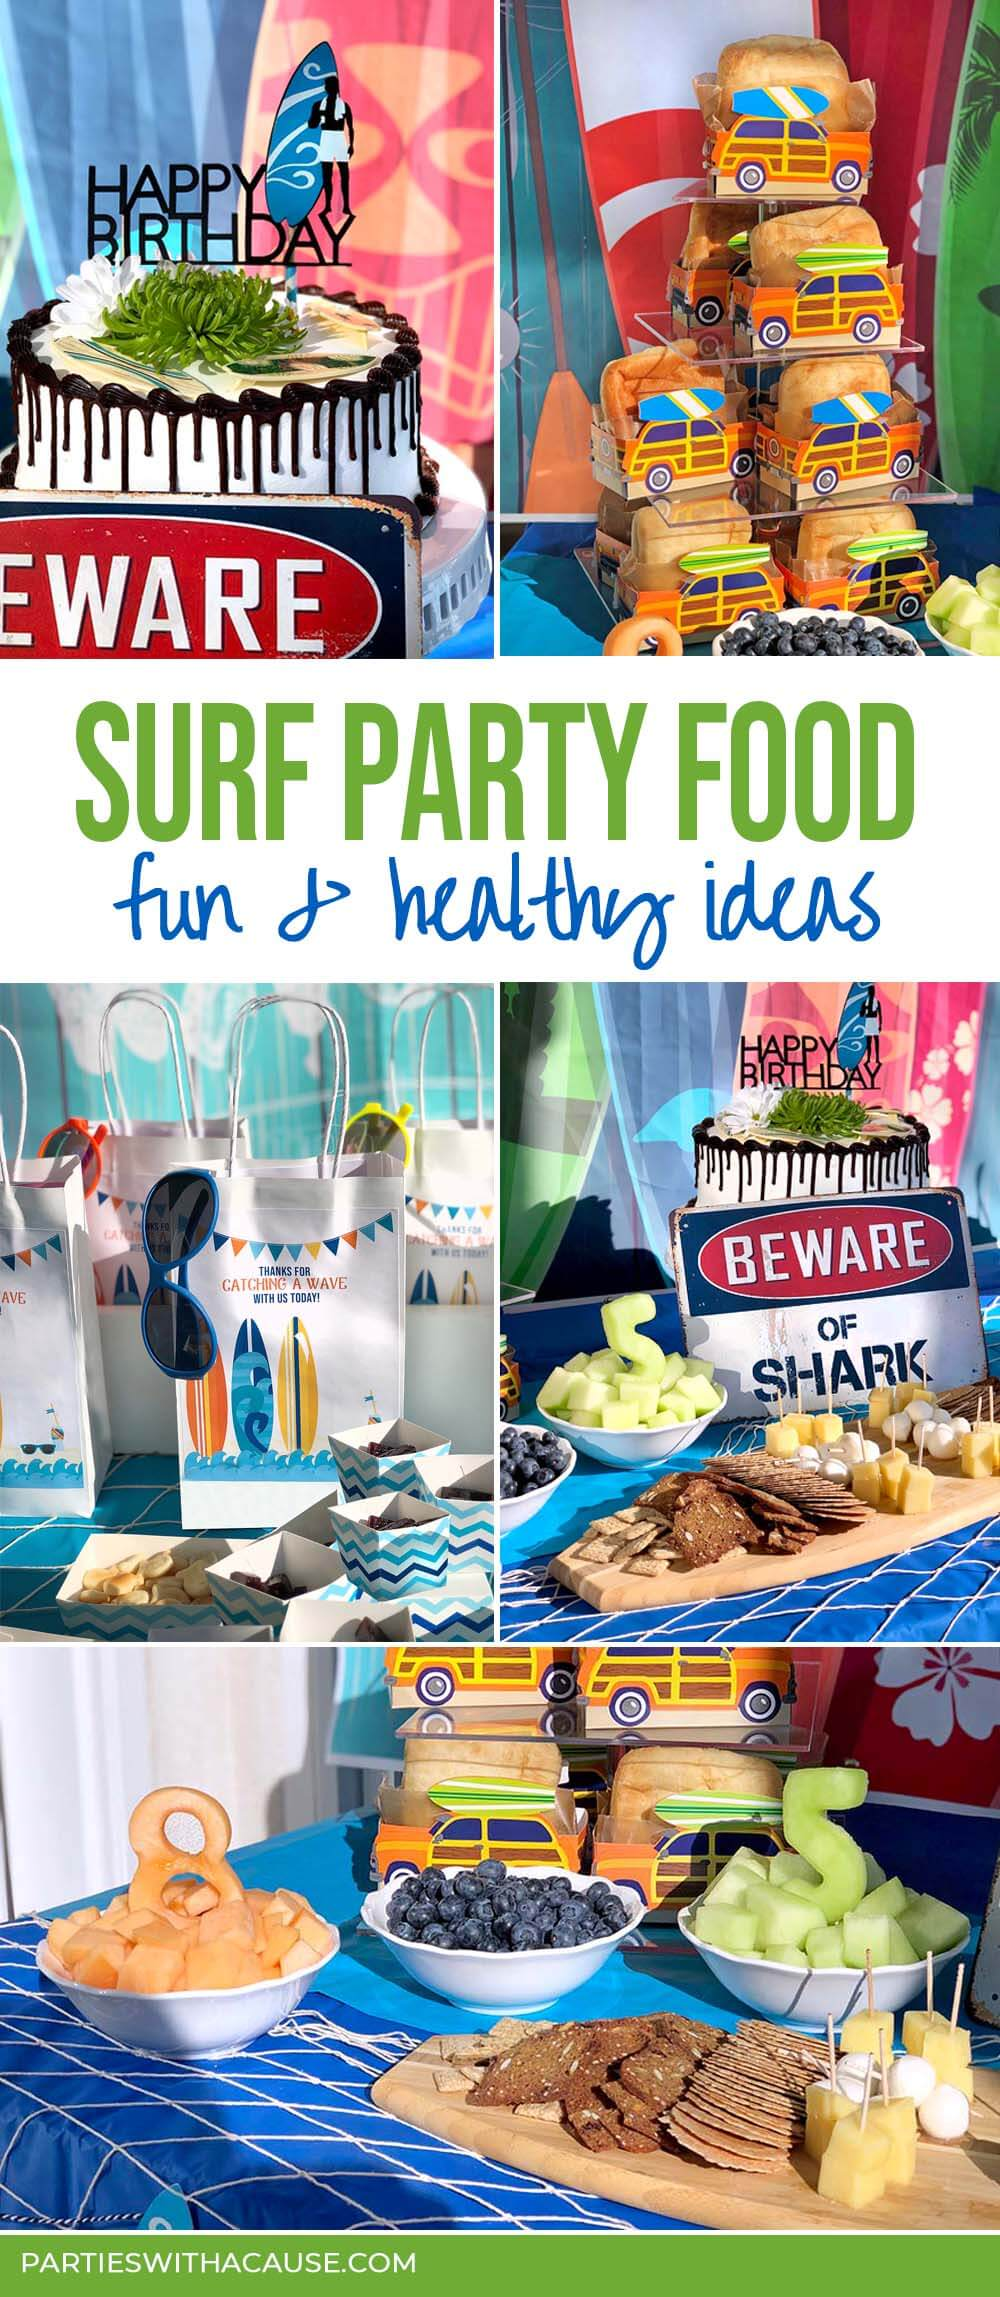 Surf party food ideas by Salt Lake Party Stylist